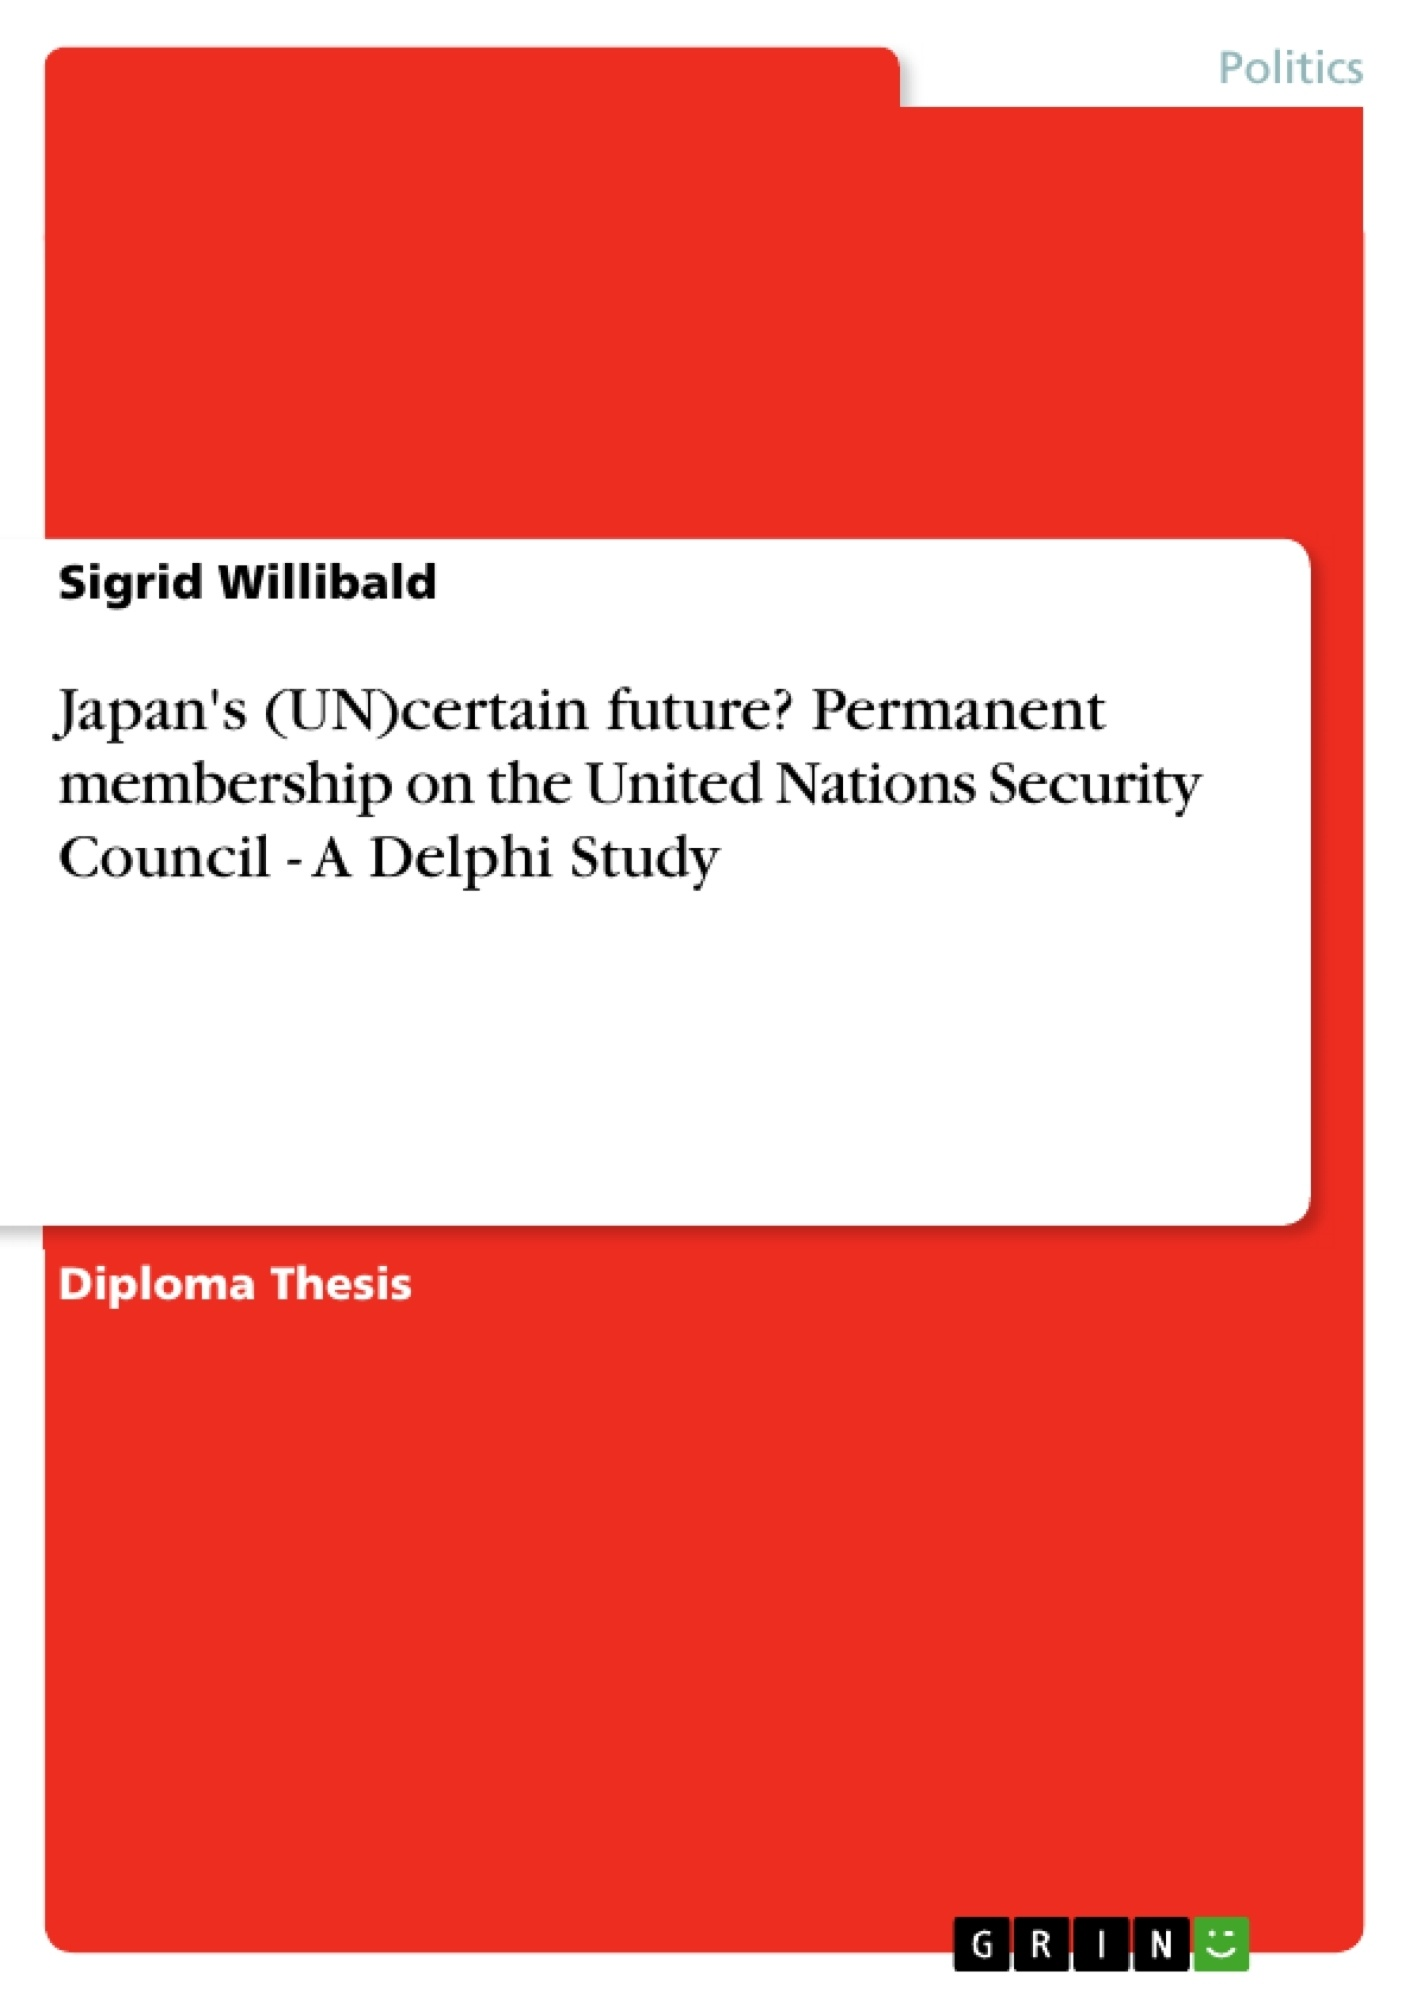 Title: Japan's (UN)certain future? Permanent membership on the United Nations Security Council - A Delphi Study